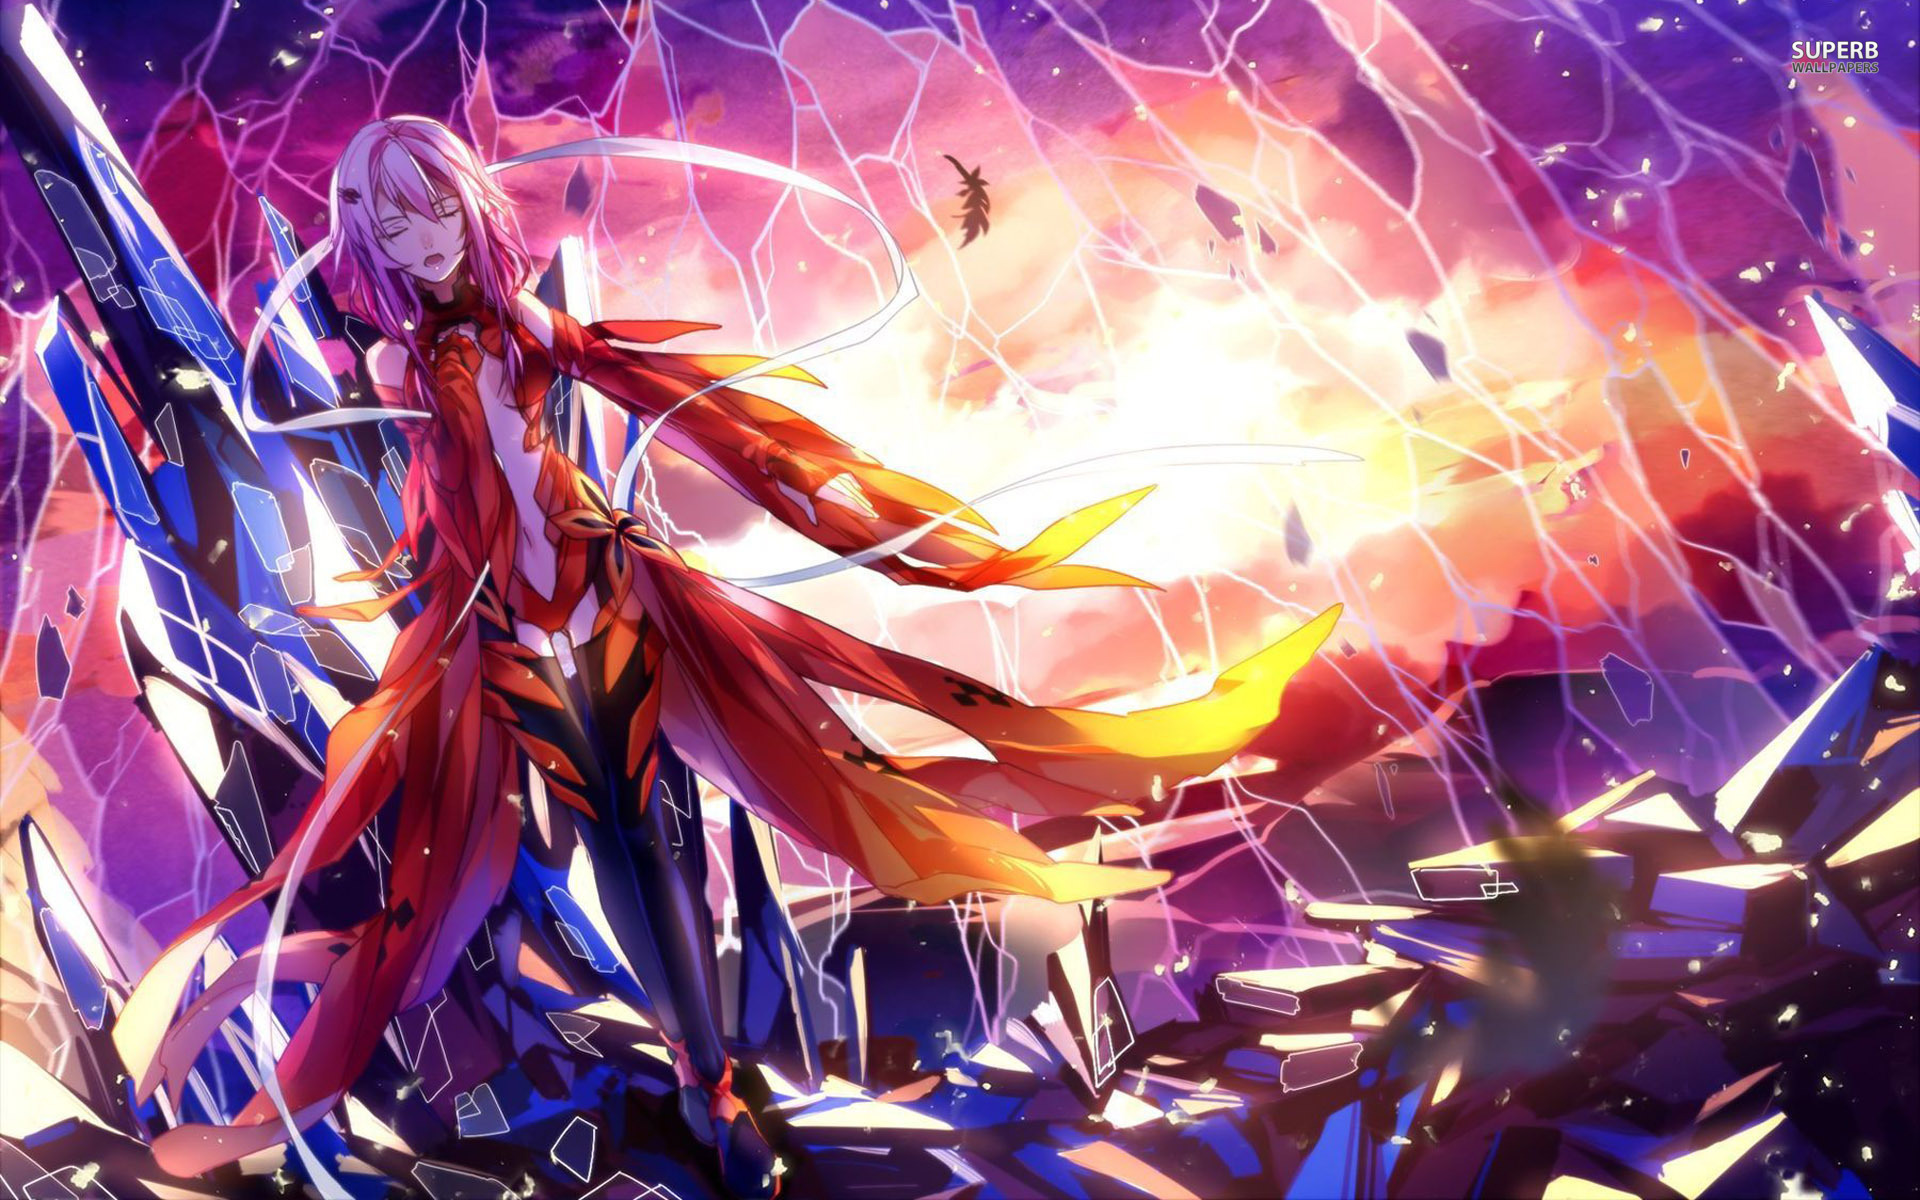 Inori Yuzuriha - Guilty Crown wallpaper 1920x1200